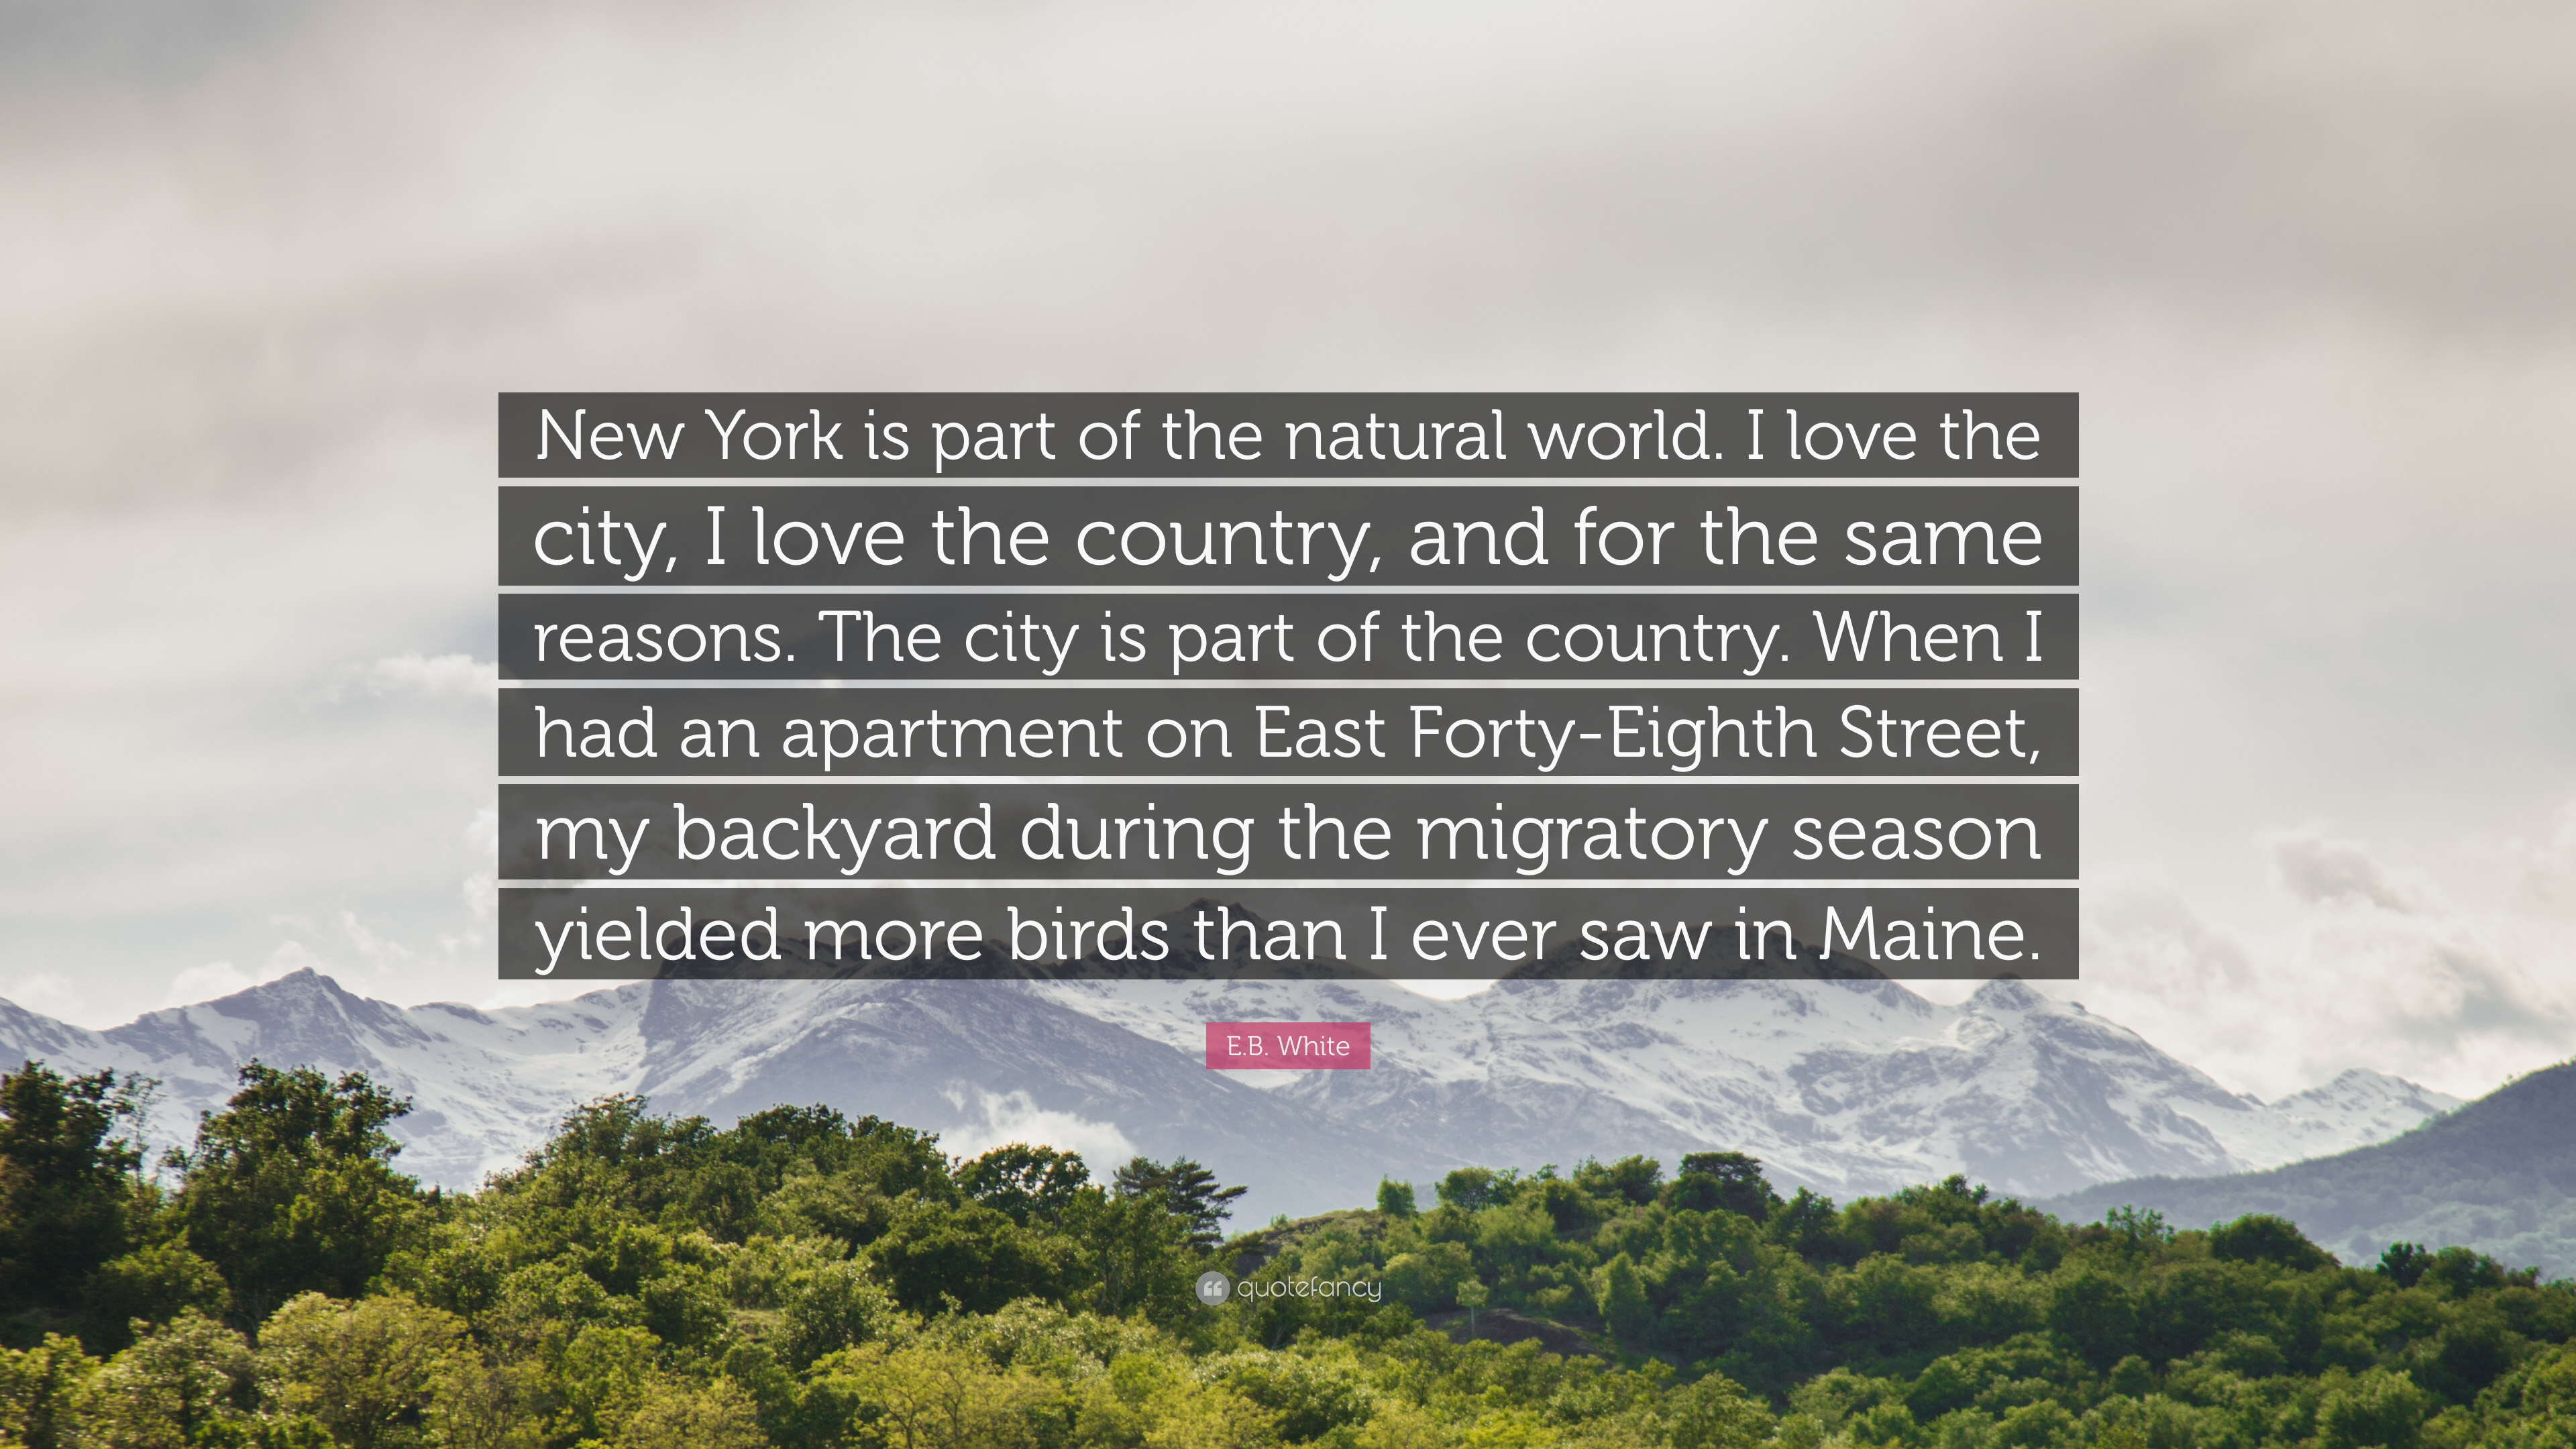 Eb white essay on new york city